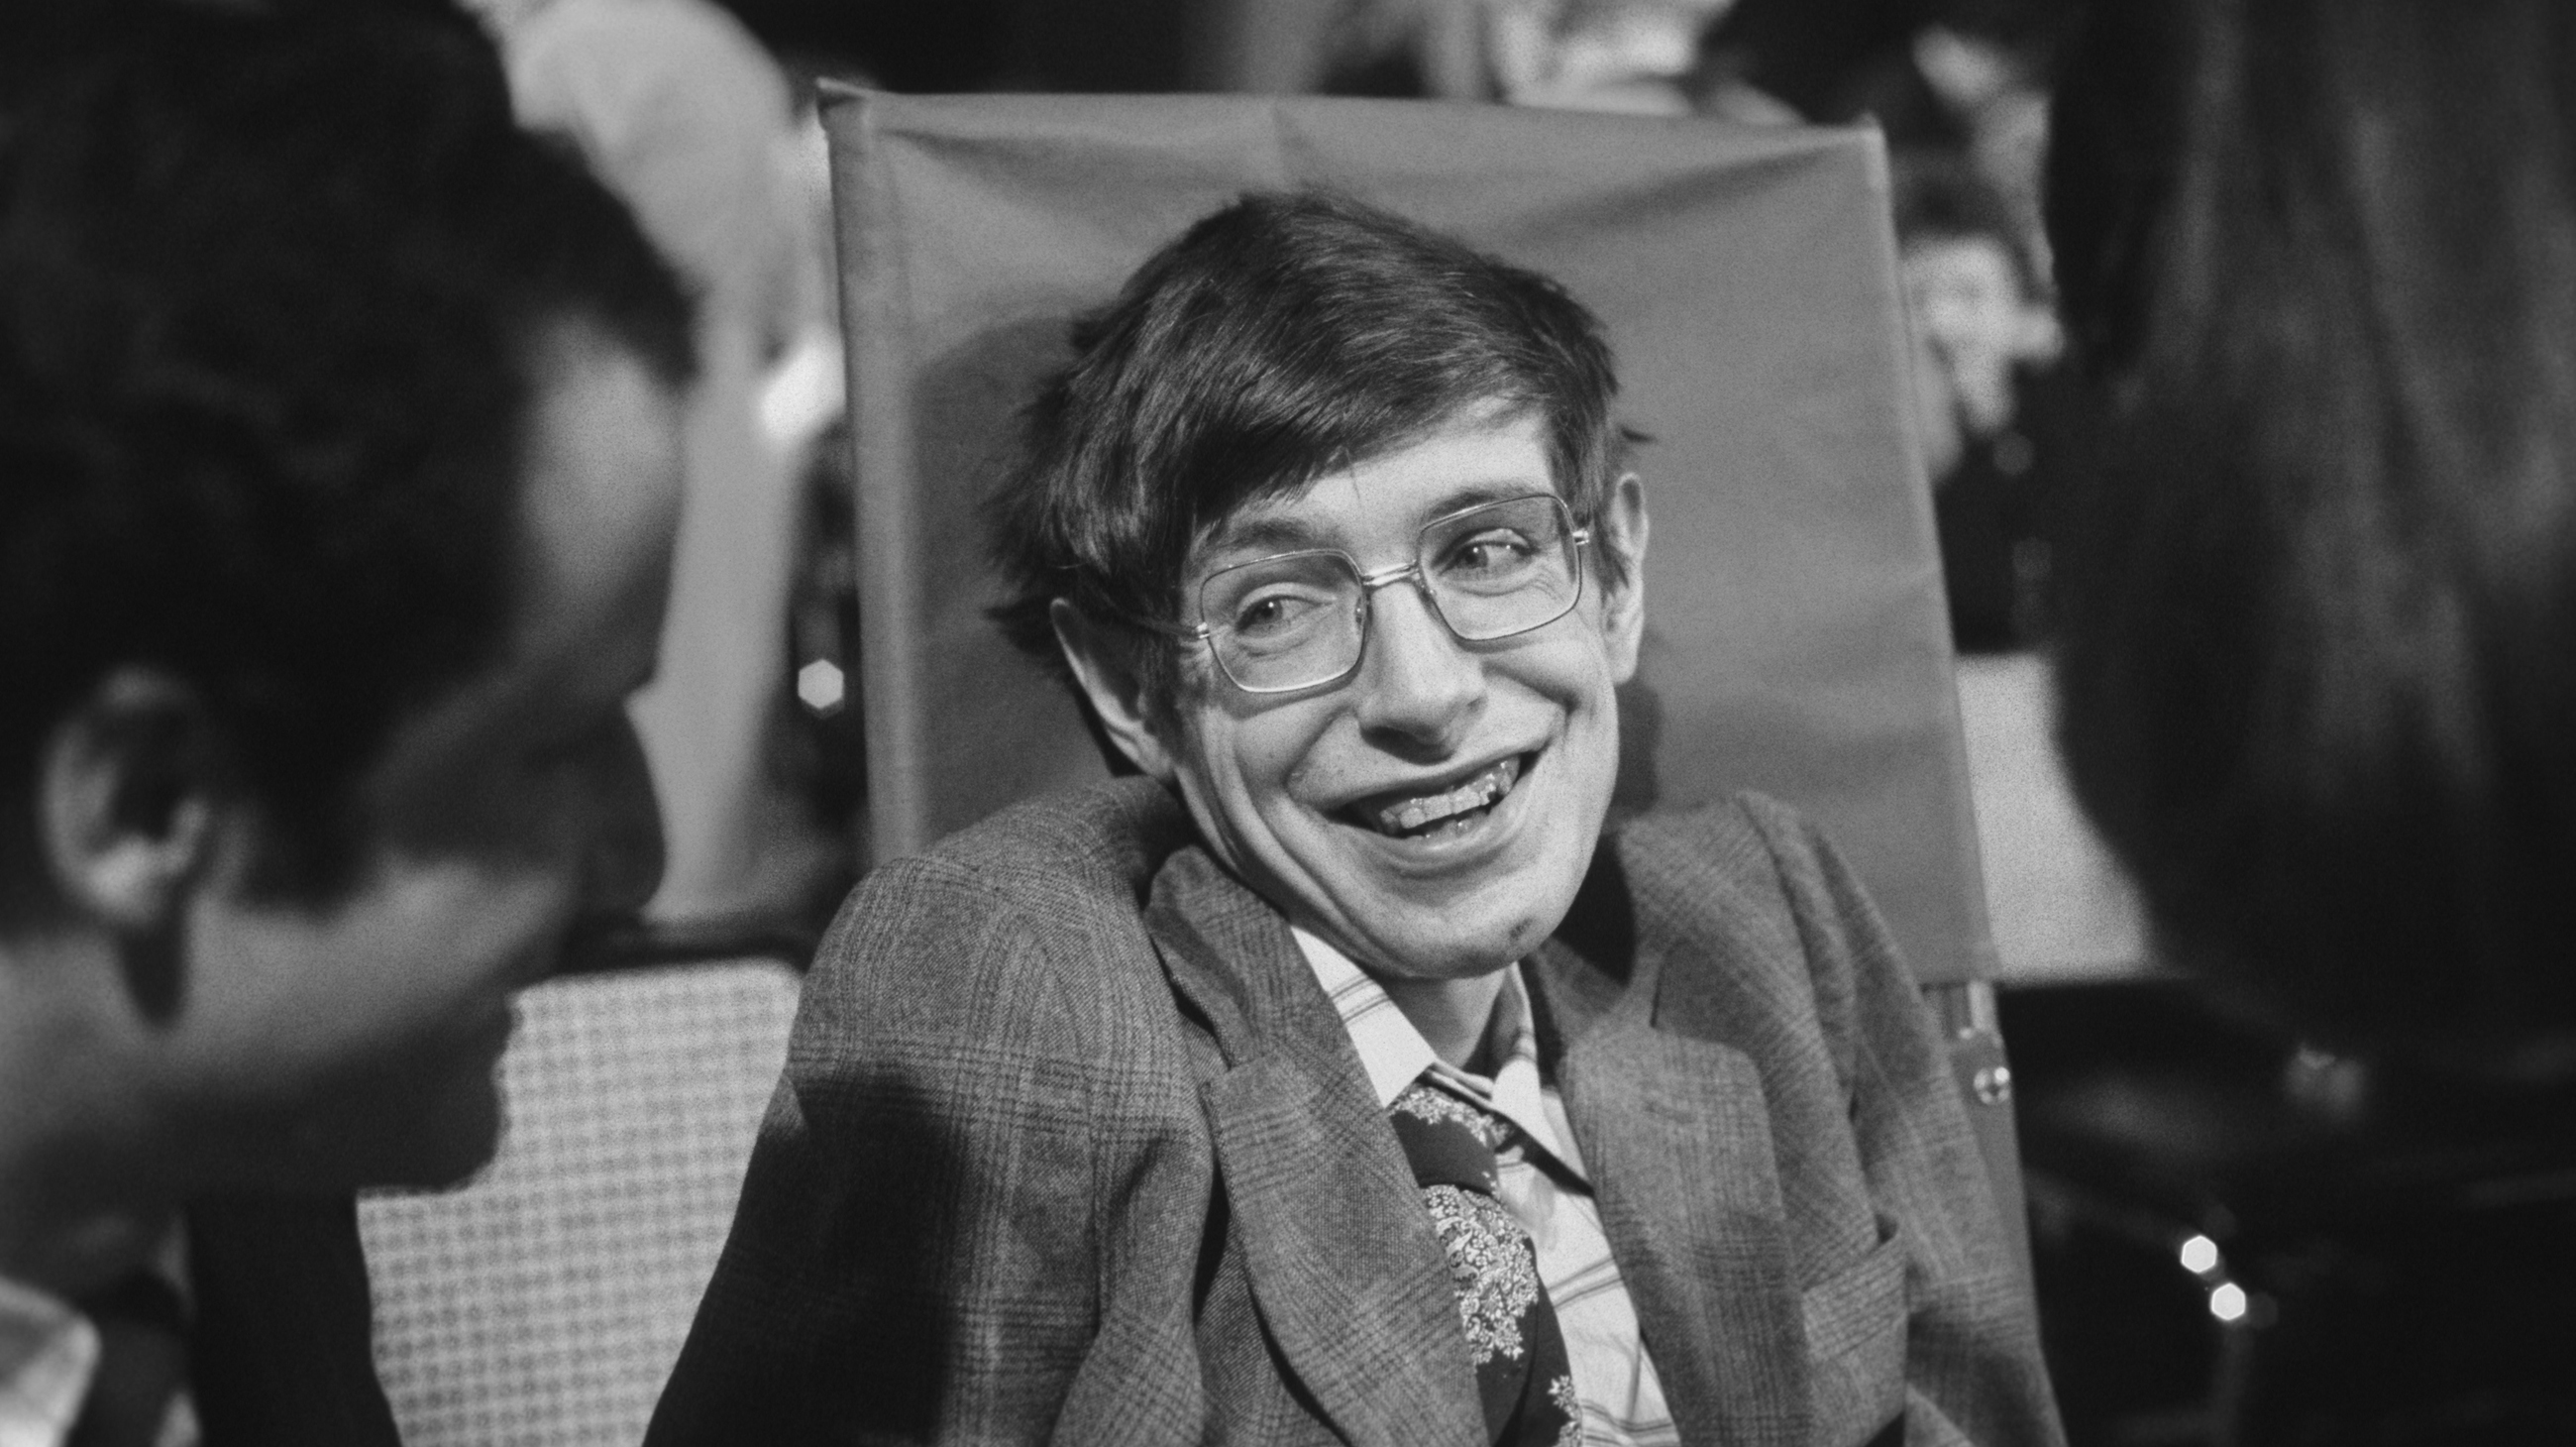 The physicist Stephen Hawking in 1979 in Princeton, New Jersey.